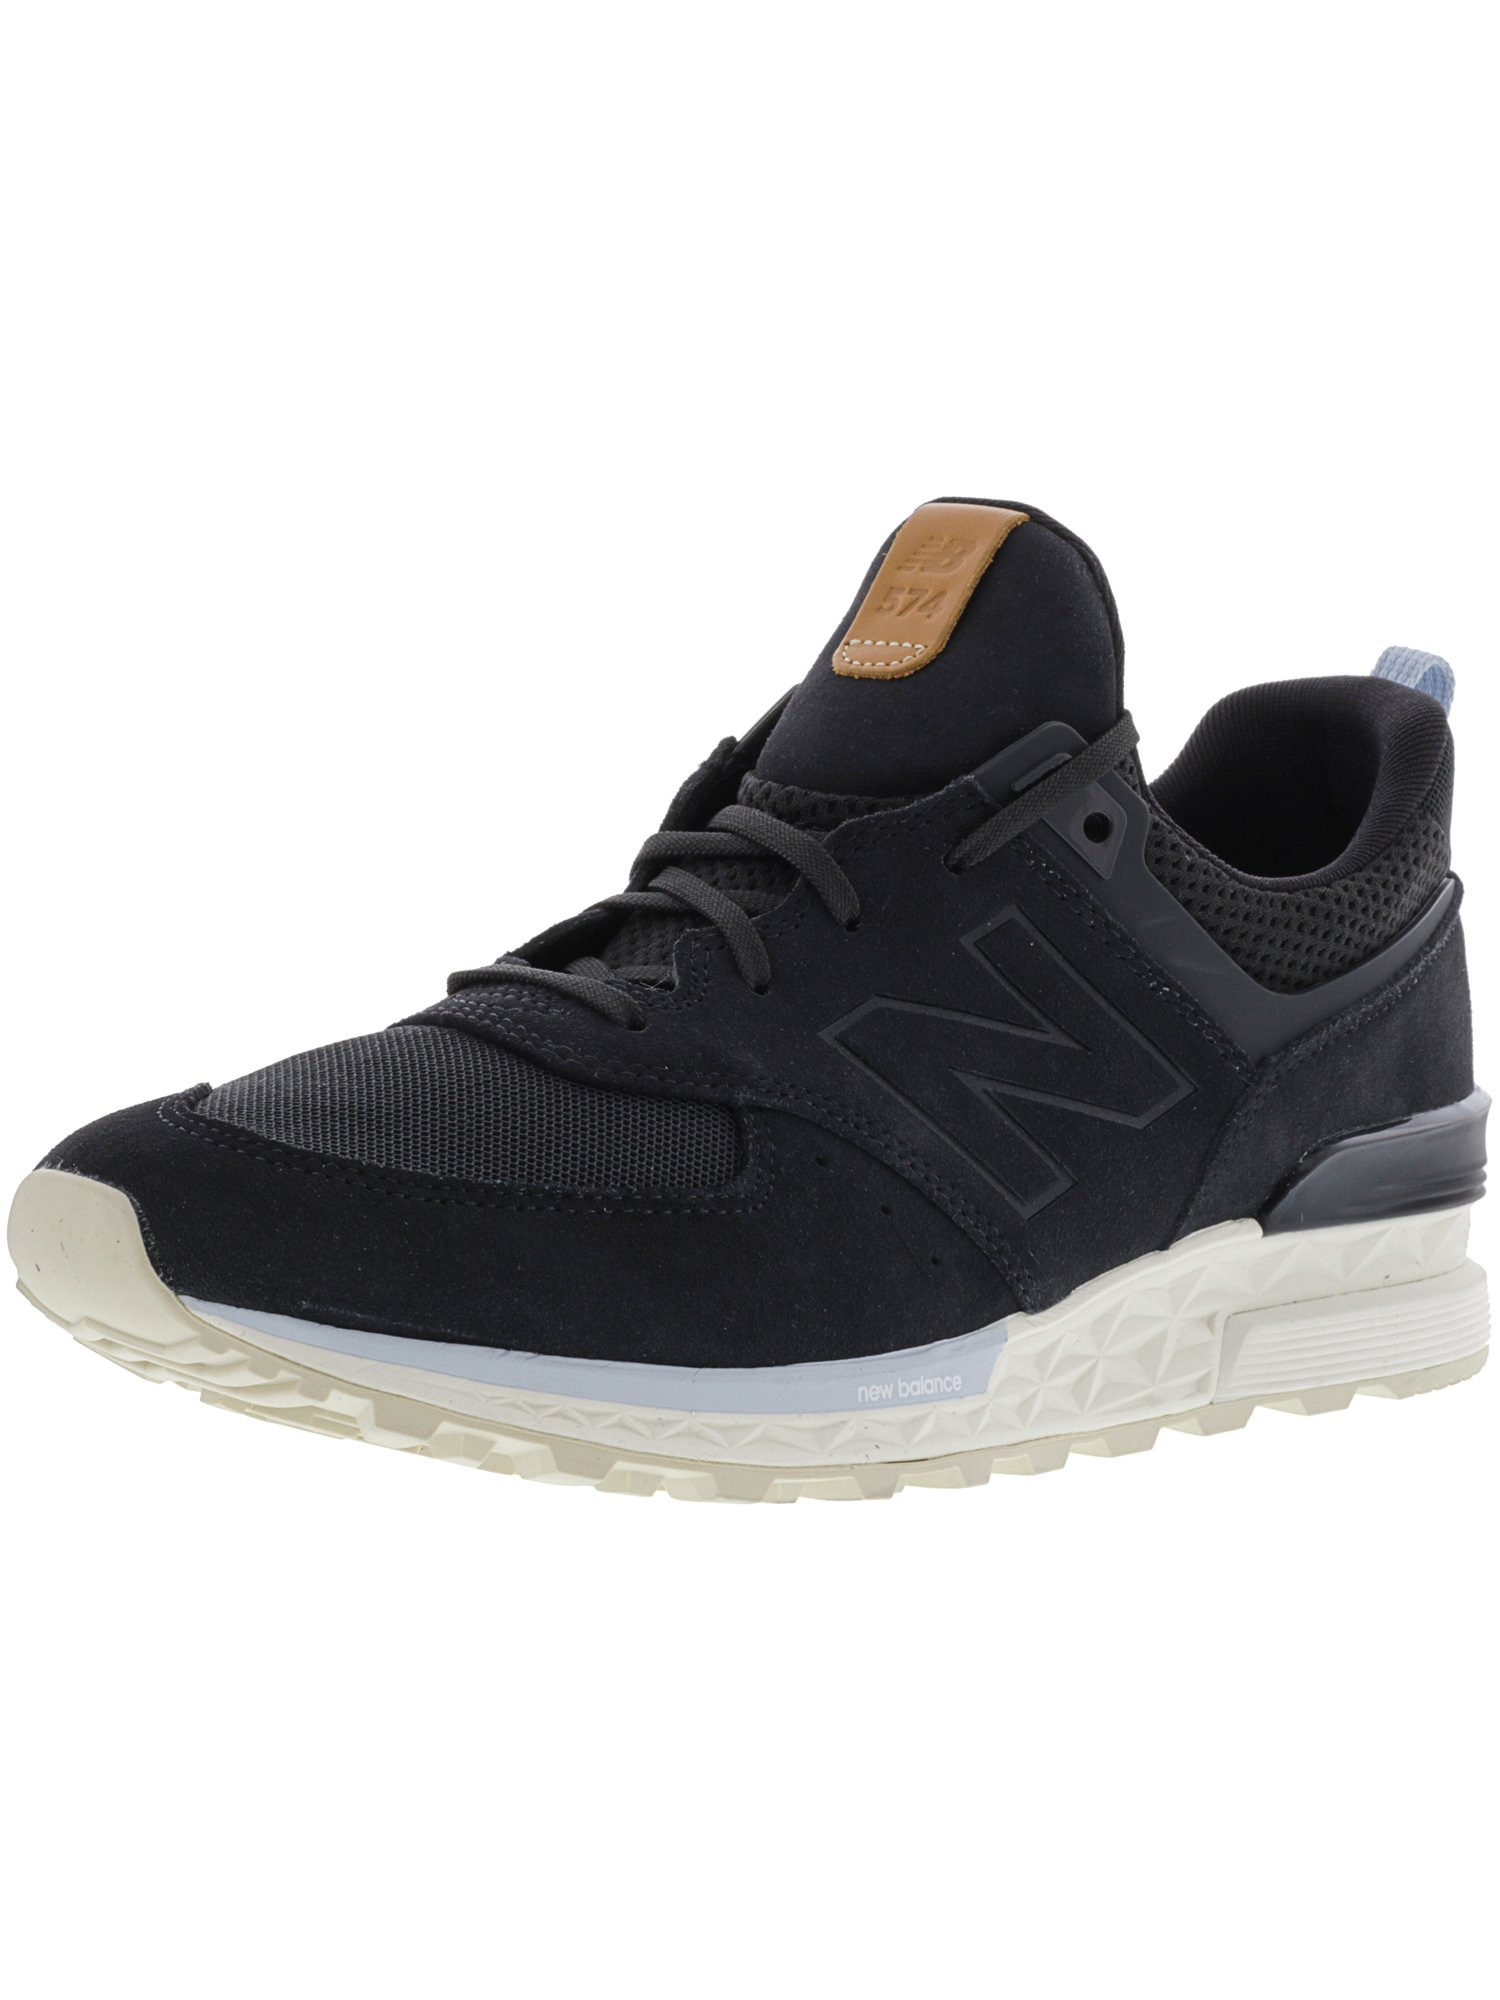 New Balance Women's Ws574 Pmd Ankle-High Leather Fashion Sneaker - 11M